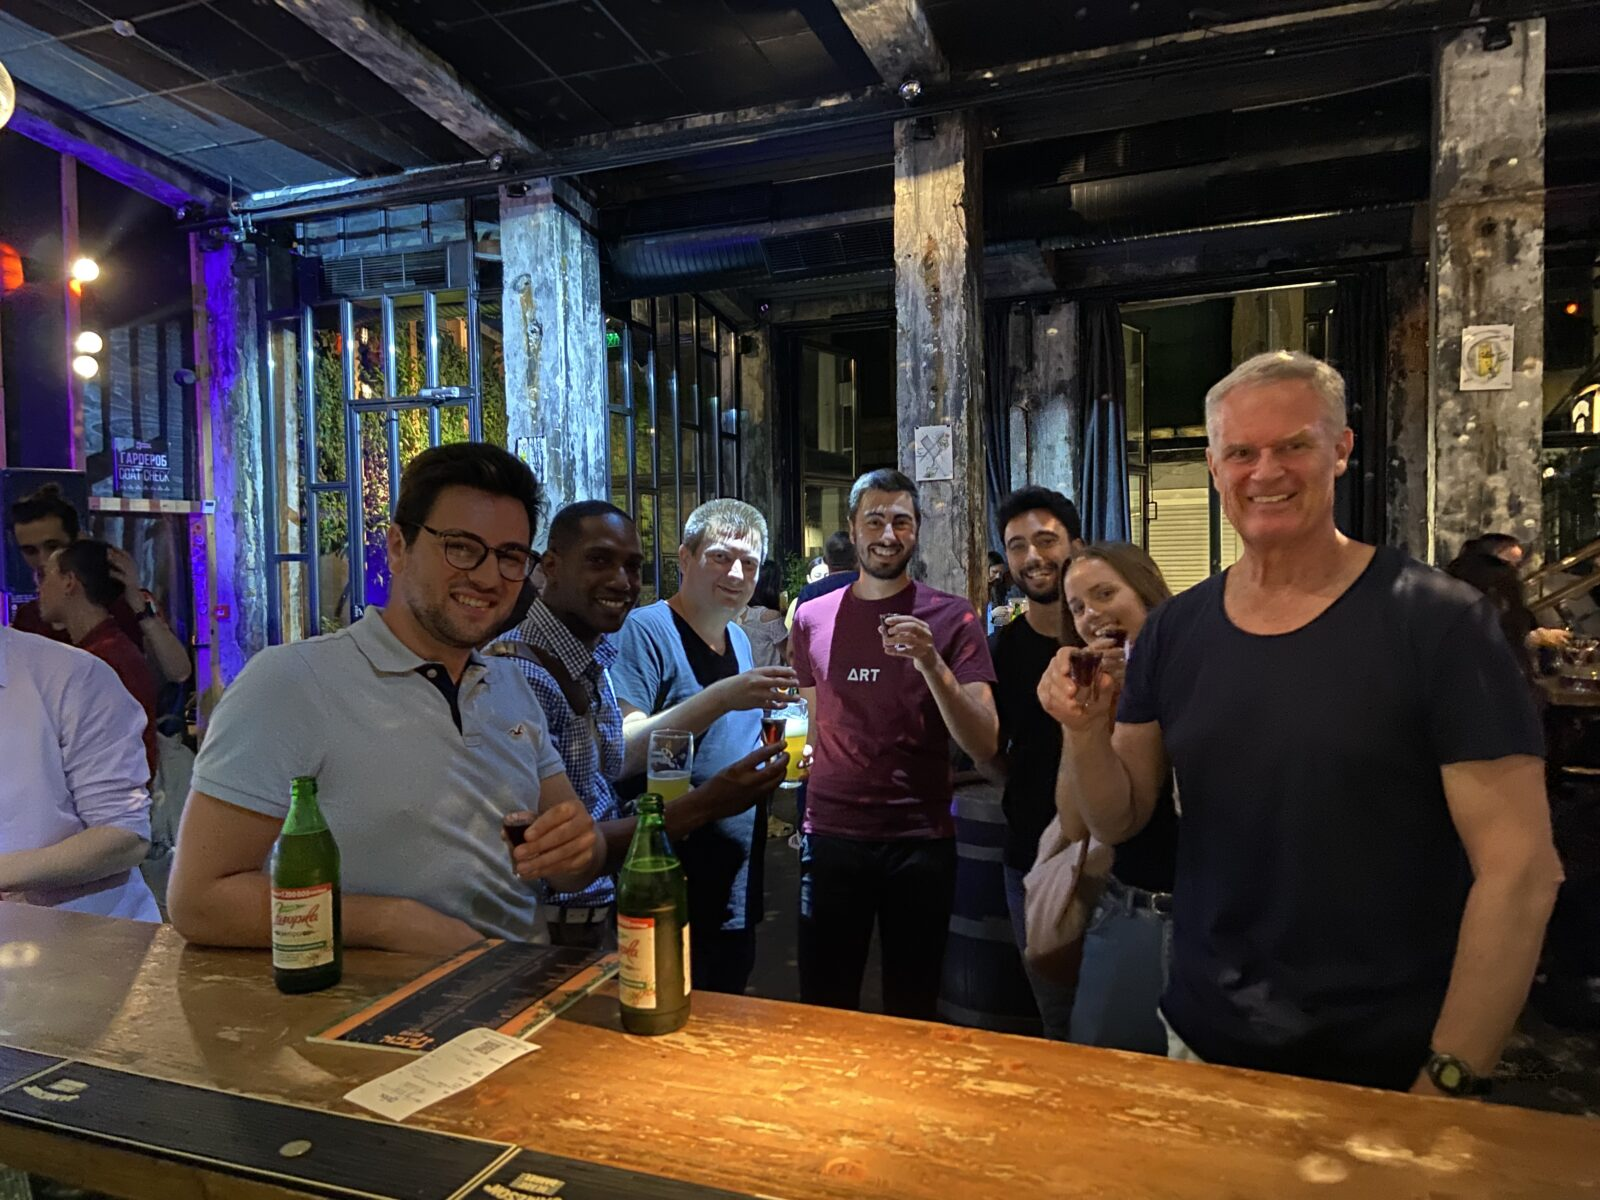 Me (far right) and guide Giovanni (third from right) at Bar Friday during the Sofia Pub Crawl.